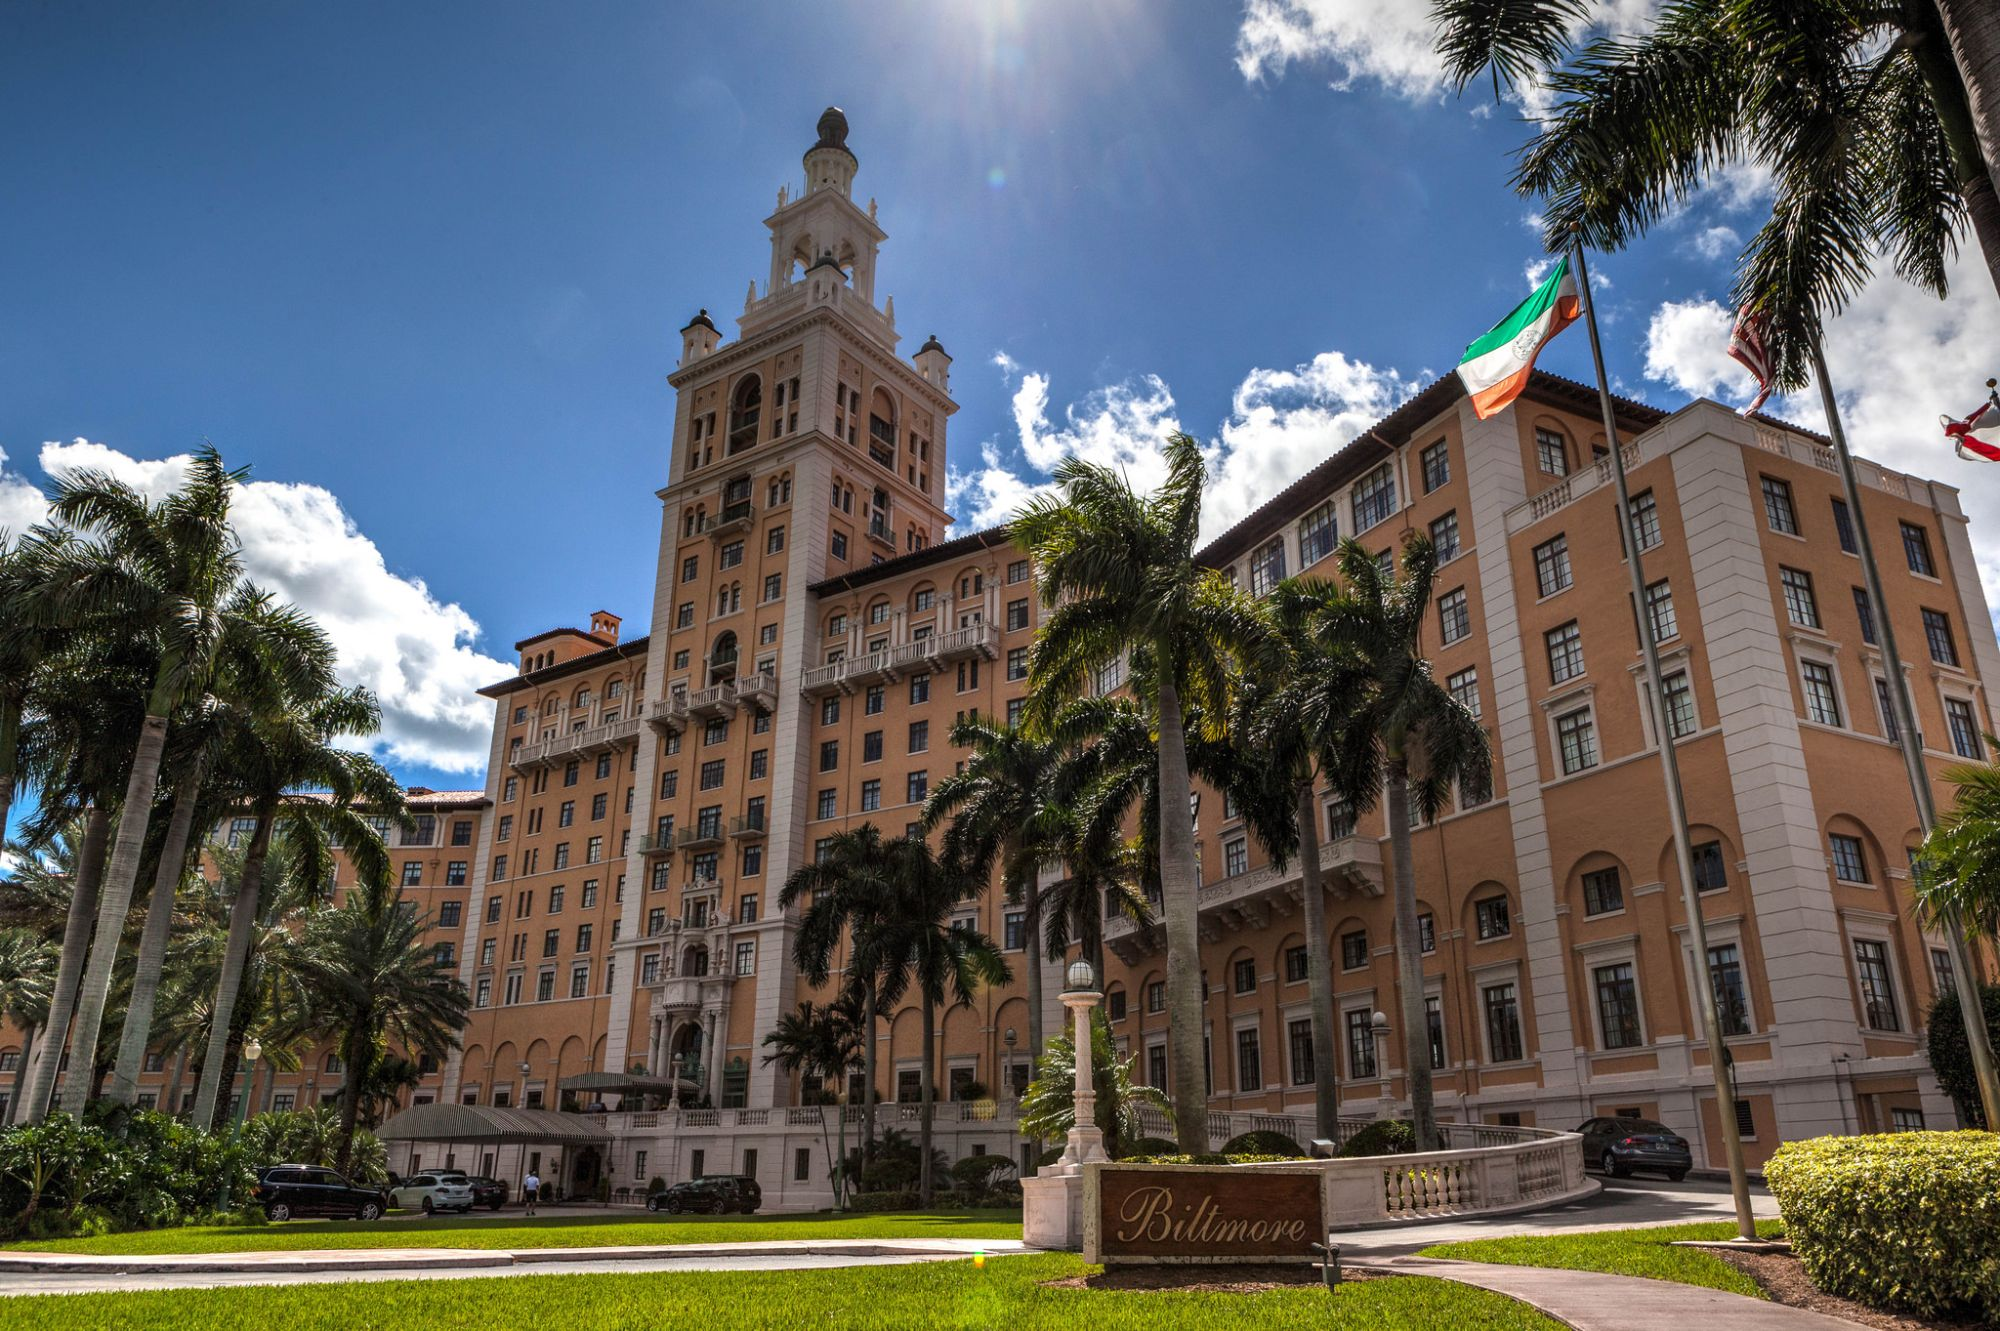 Visit the Biltmore Hotel in Coral Gables and Take a Free Tour